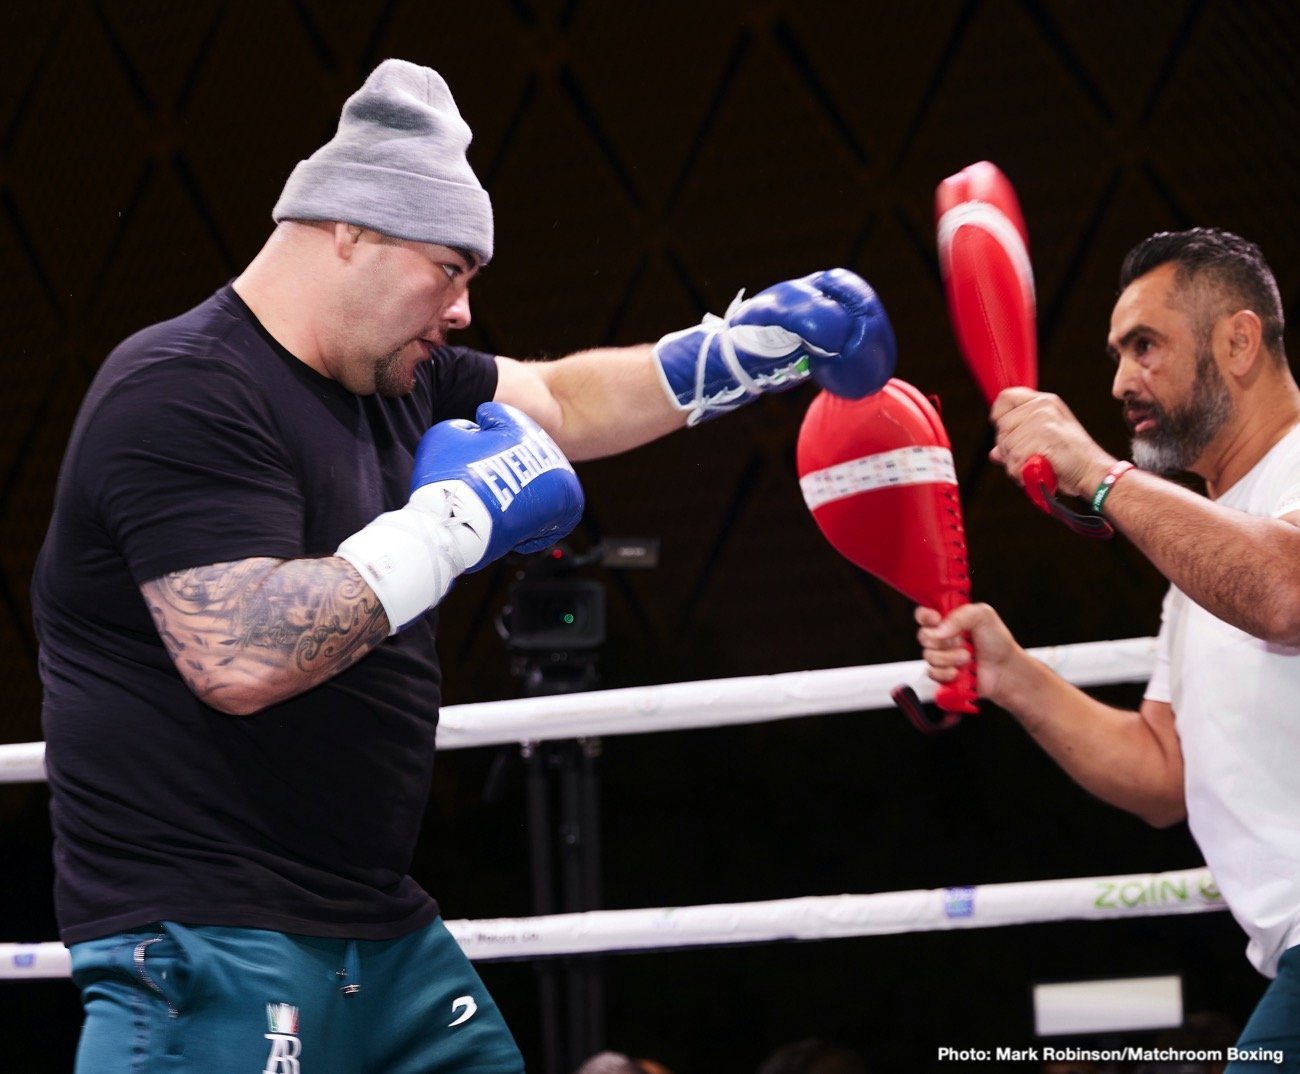 Andy Ruiz, Manuel Charr - It seems another fight option has opened up for former heavyweight champion Andy Ruiz. Manuel Charr, who holds a version of the WBA heavyweight title, and who has been inactive himself, has told Sky Sports how he hopes his manager and his promoter can get the fight with Ruiz made. Charr, 31-4(17) and inactive since his November 2017 win over Alexander Ustinov, says he is not interested in easy fights, that he wants Ruiz – in either the U.S, in Mexico or even in the U.K.